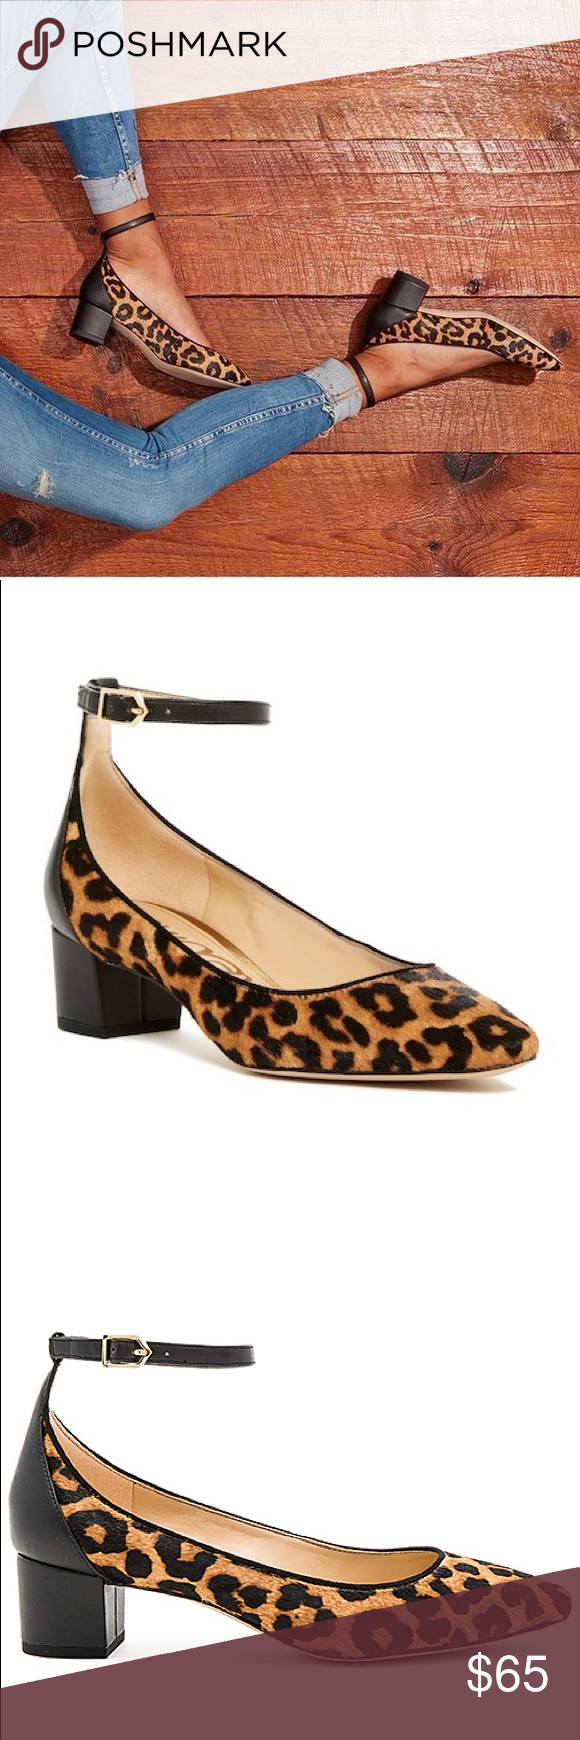 742783921 NWT Sam Edelman Leopard Lola Pump Make a statement in the perfect statement  sandal.